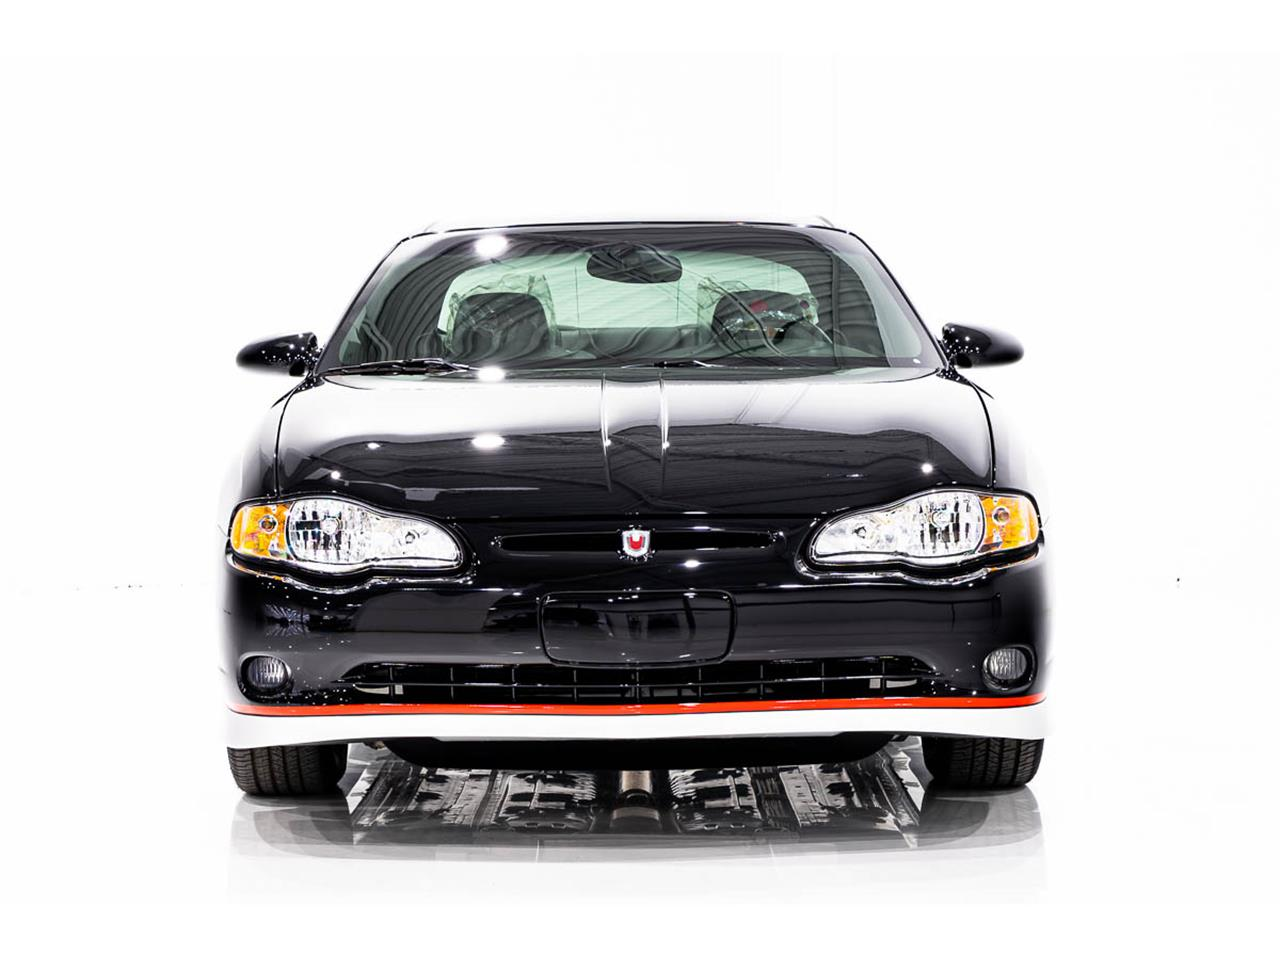 2002 Chevrolet Monte Carlo SS Intimidator (CC-1413946) for sale in Montreal, Quebec